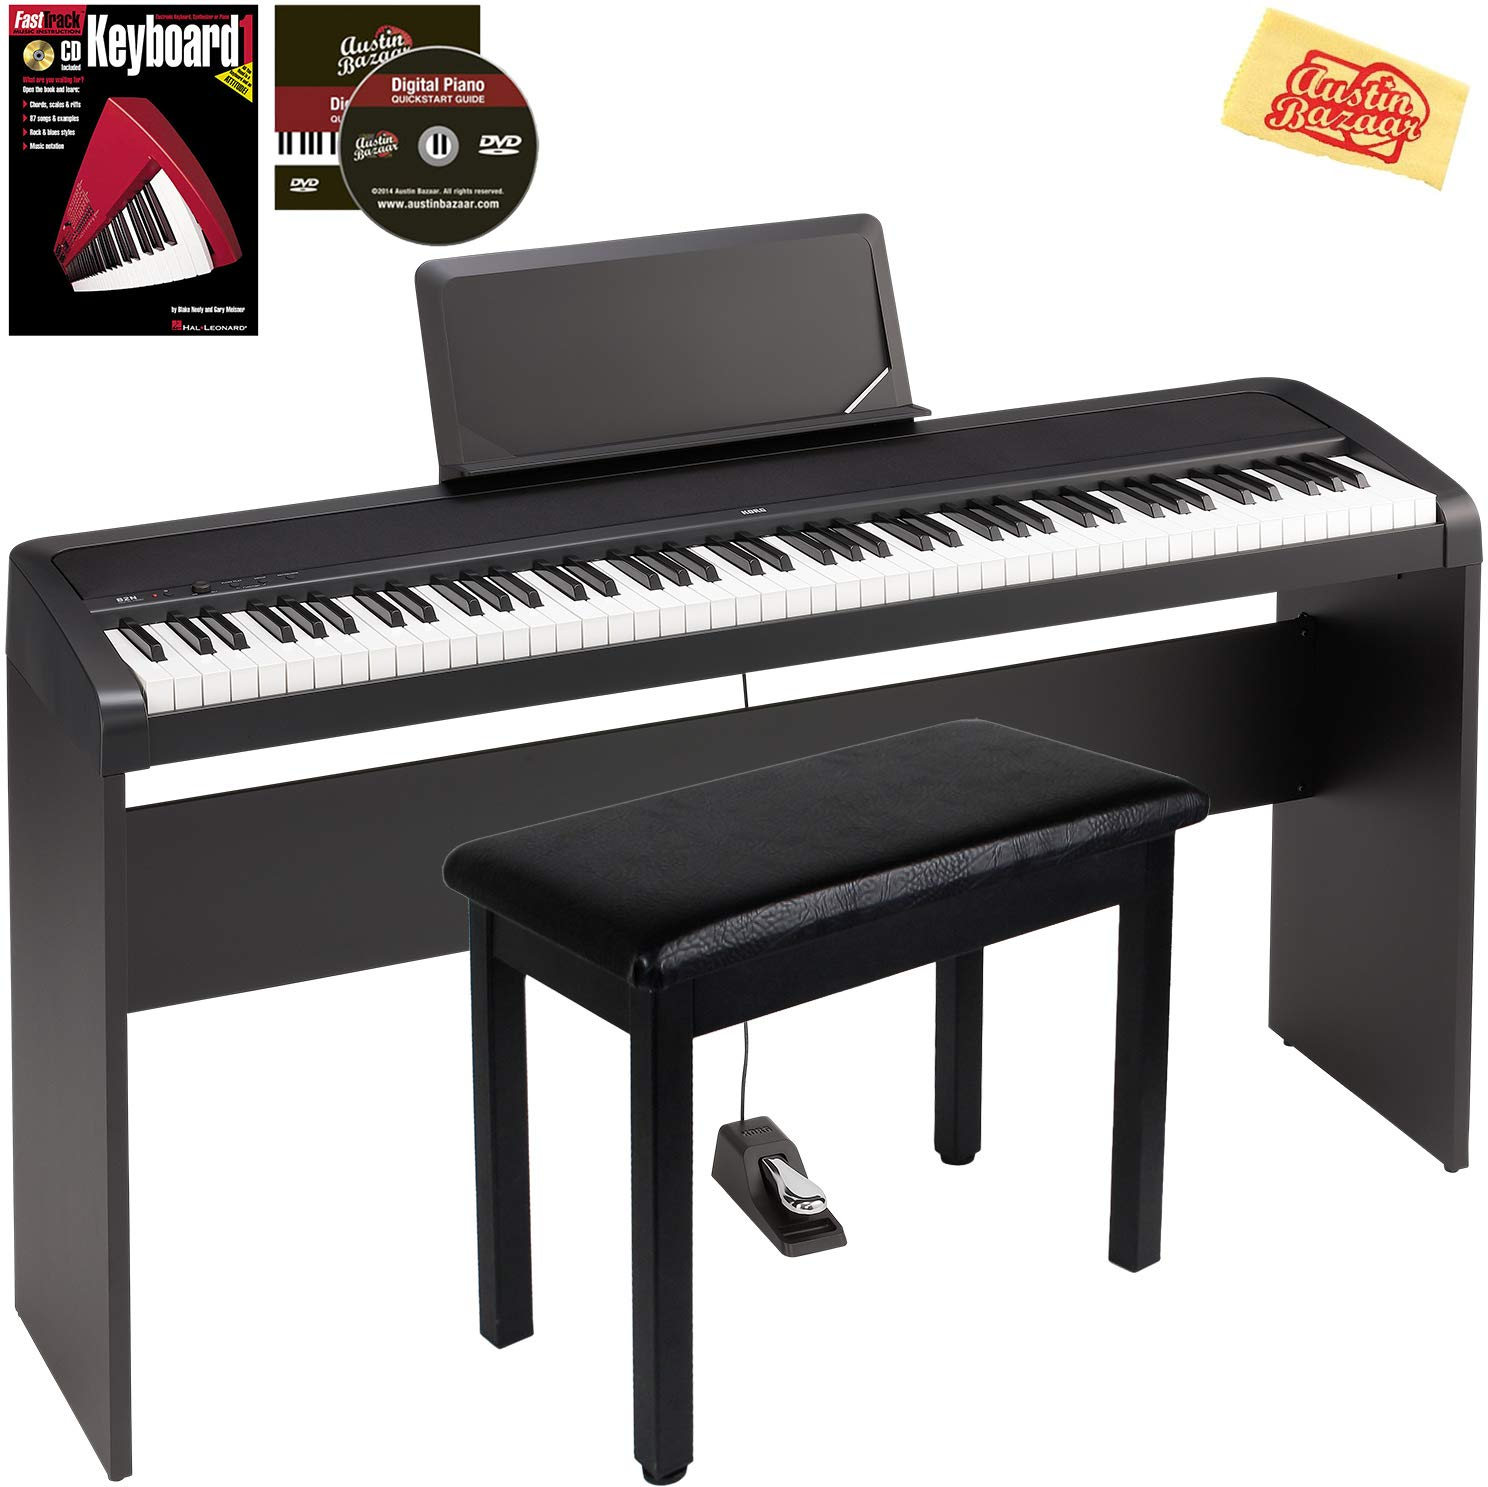 Korg B2N Digital Piano Black Bundle with Furniture-Style Stand, Sustain Pedal, Furniture-Style Bench, Instructional Book, Instructional DVD, and Polishing Cloth by Austin Bazaar